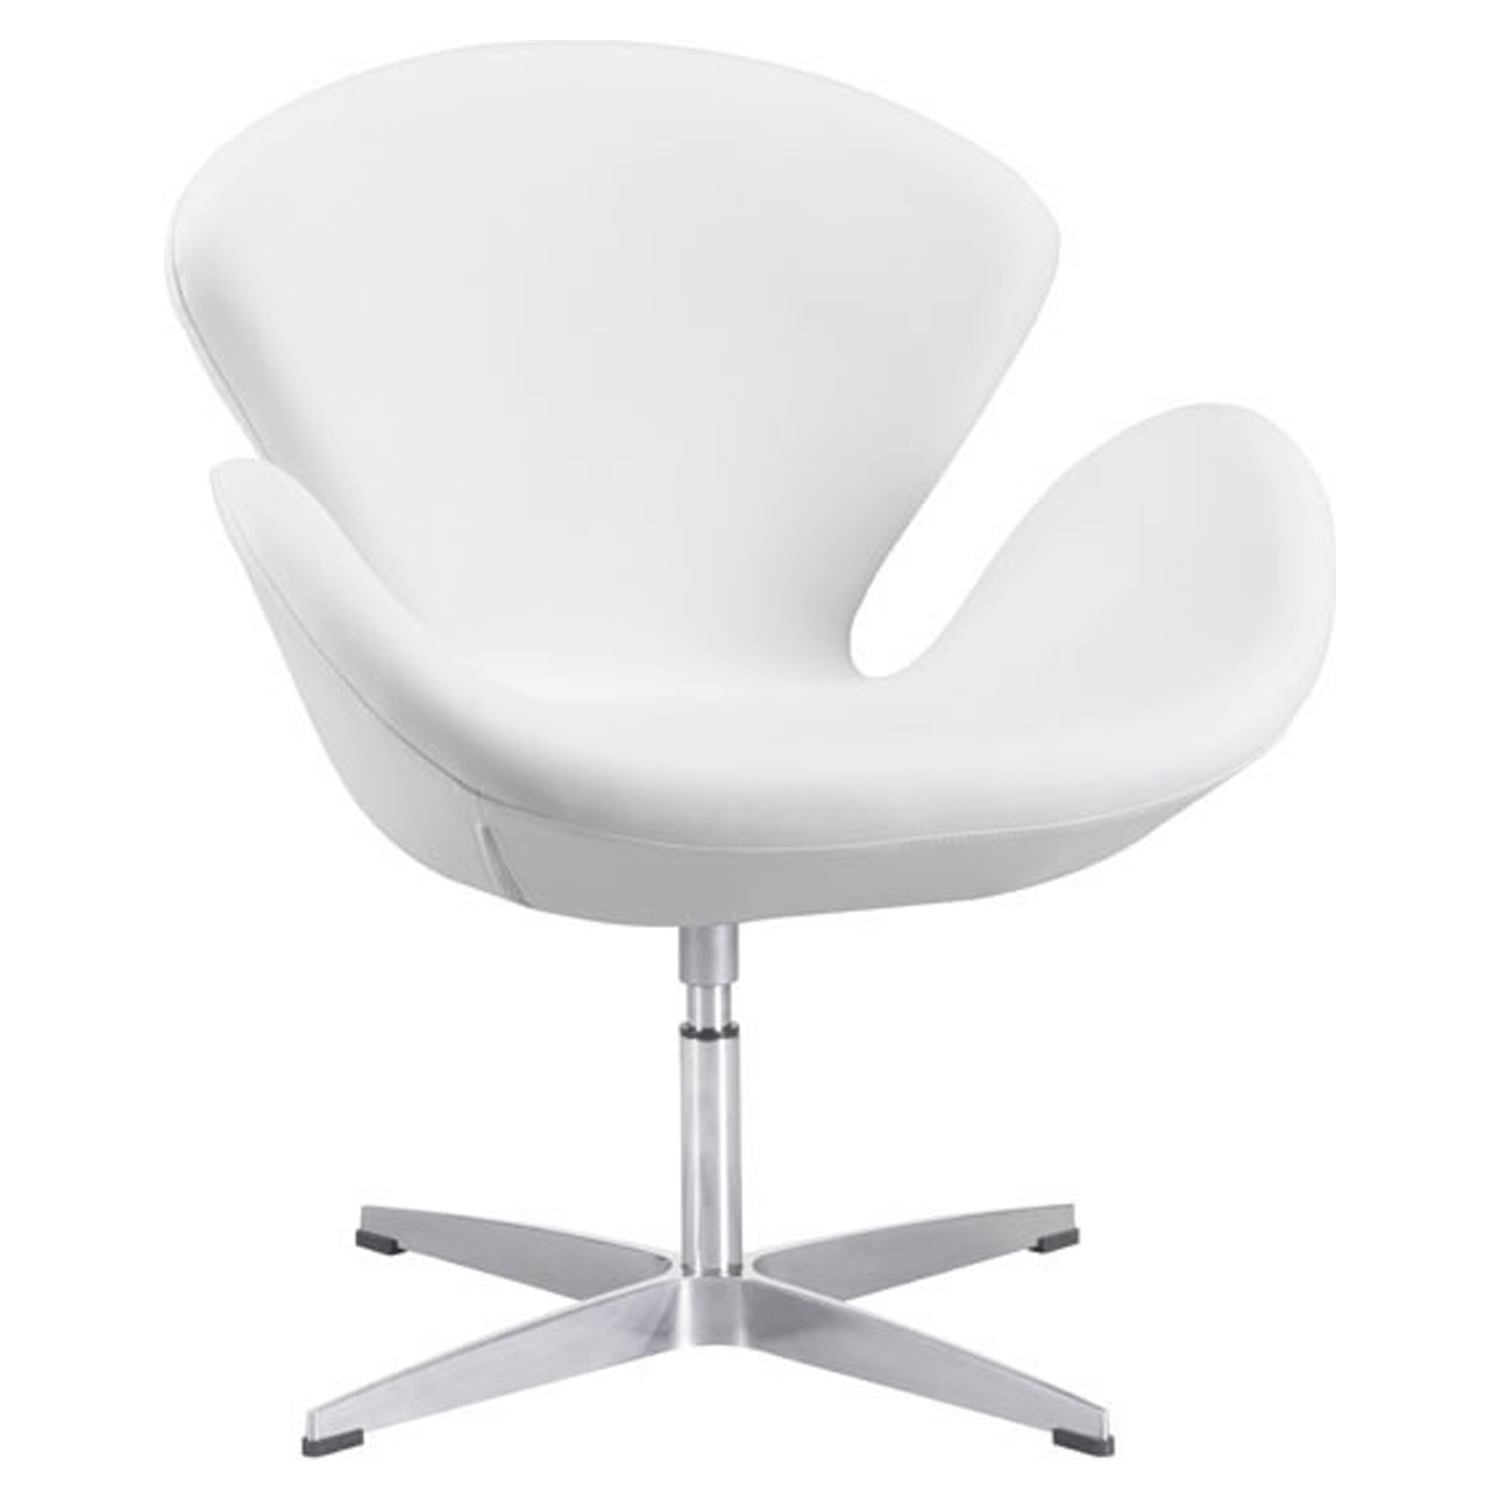 Pori Arm Chair - White